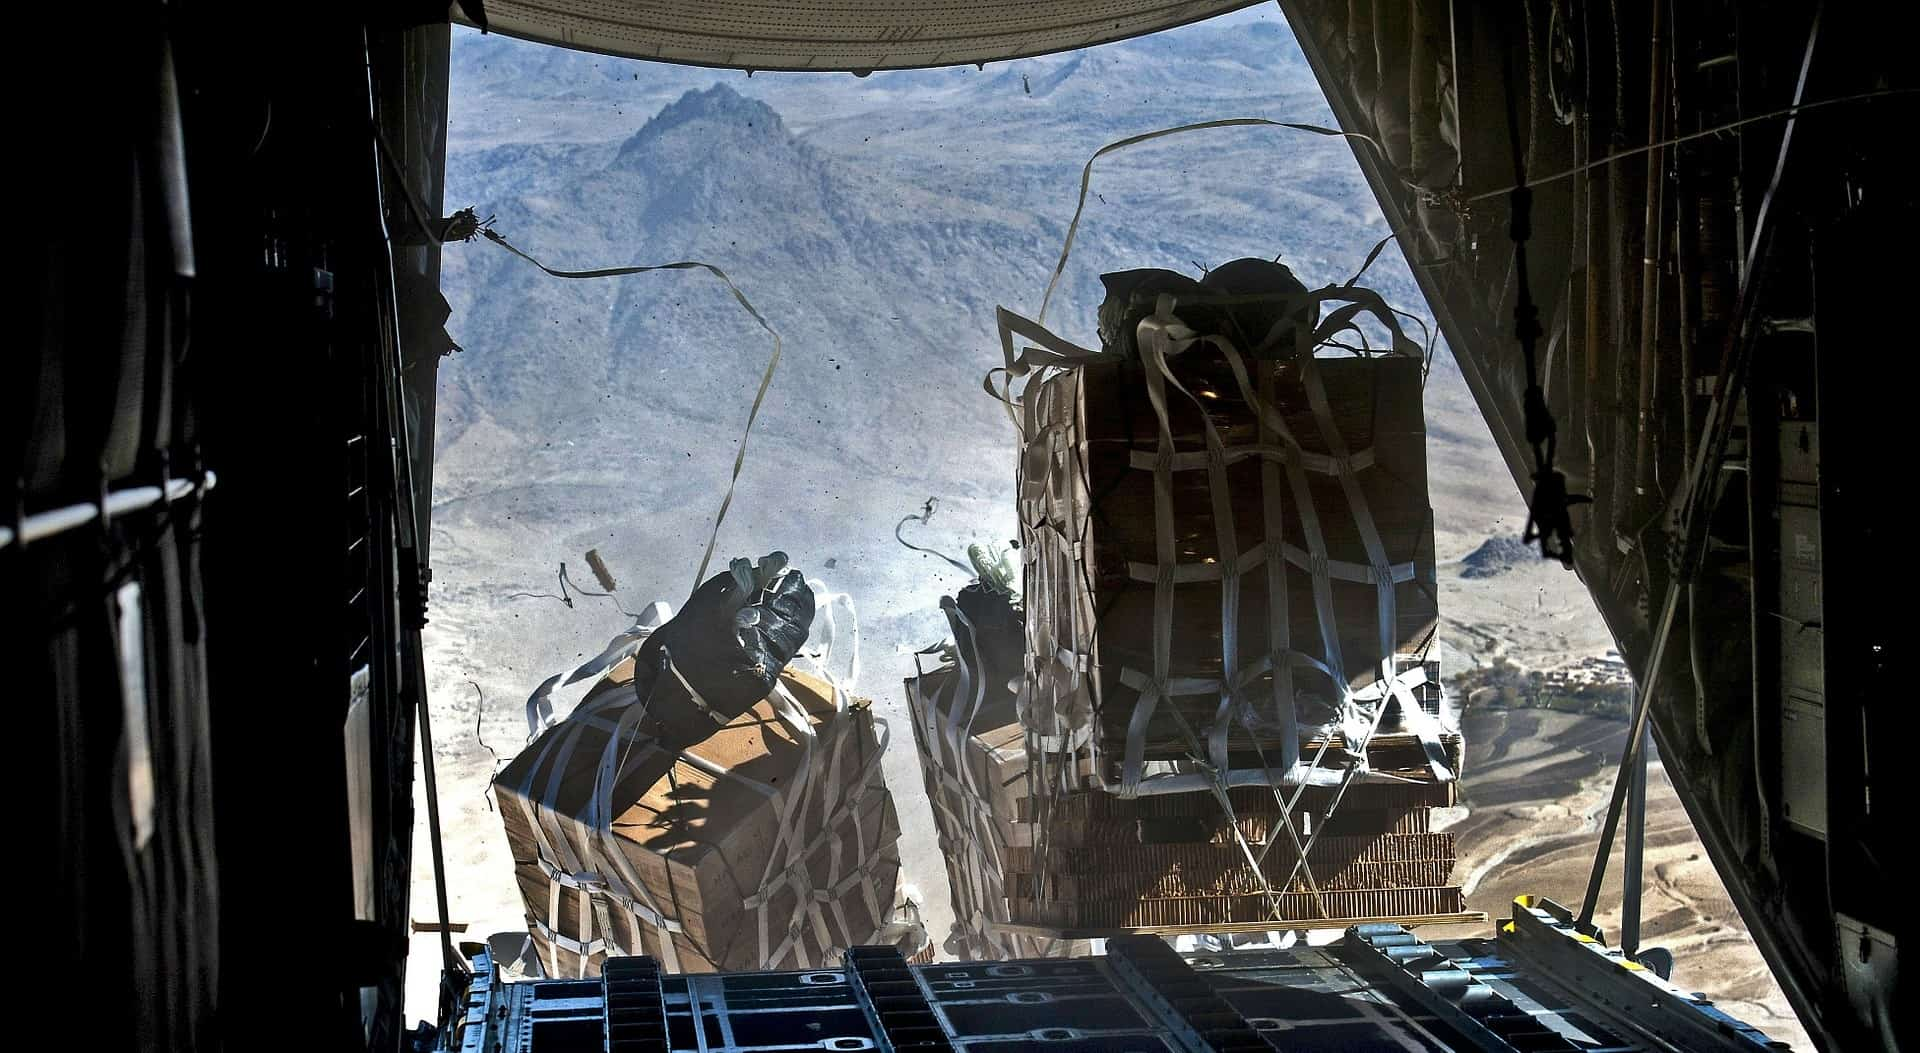 - US Military Supply Chain, Burning Questions from the Private Sector